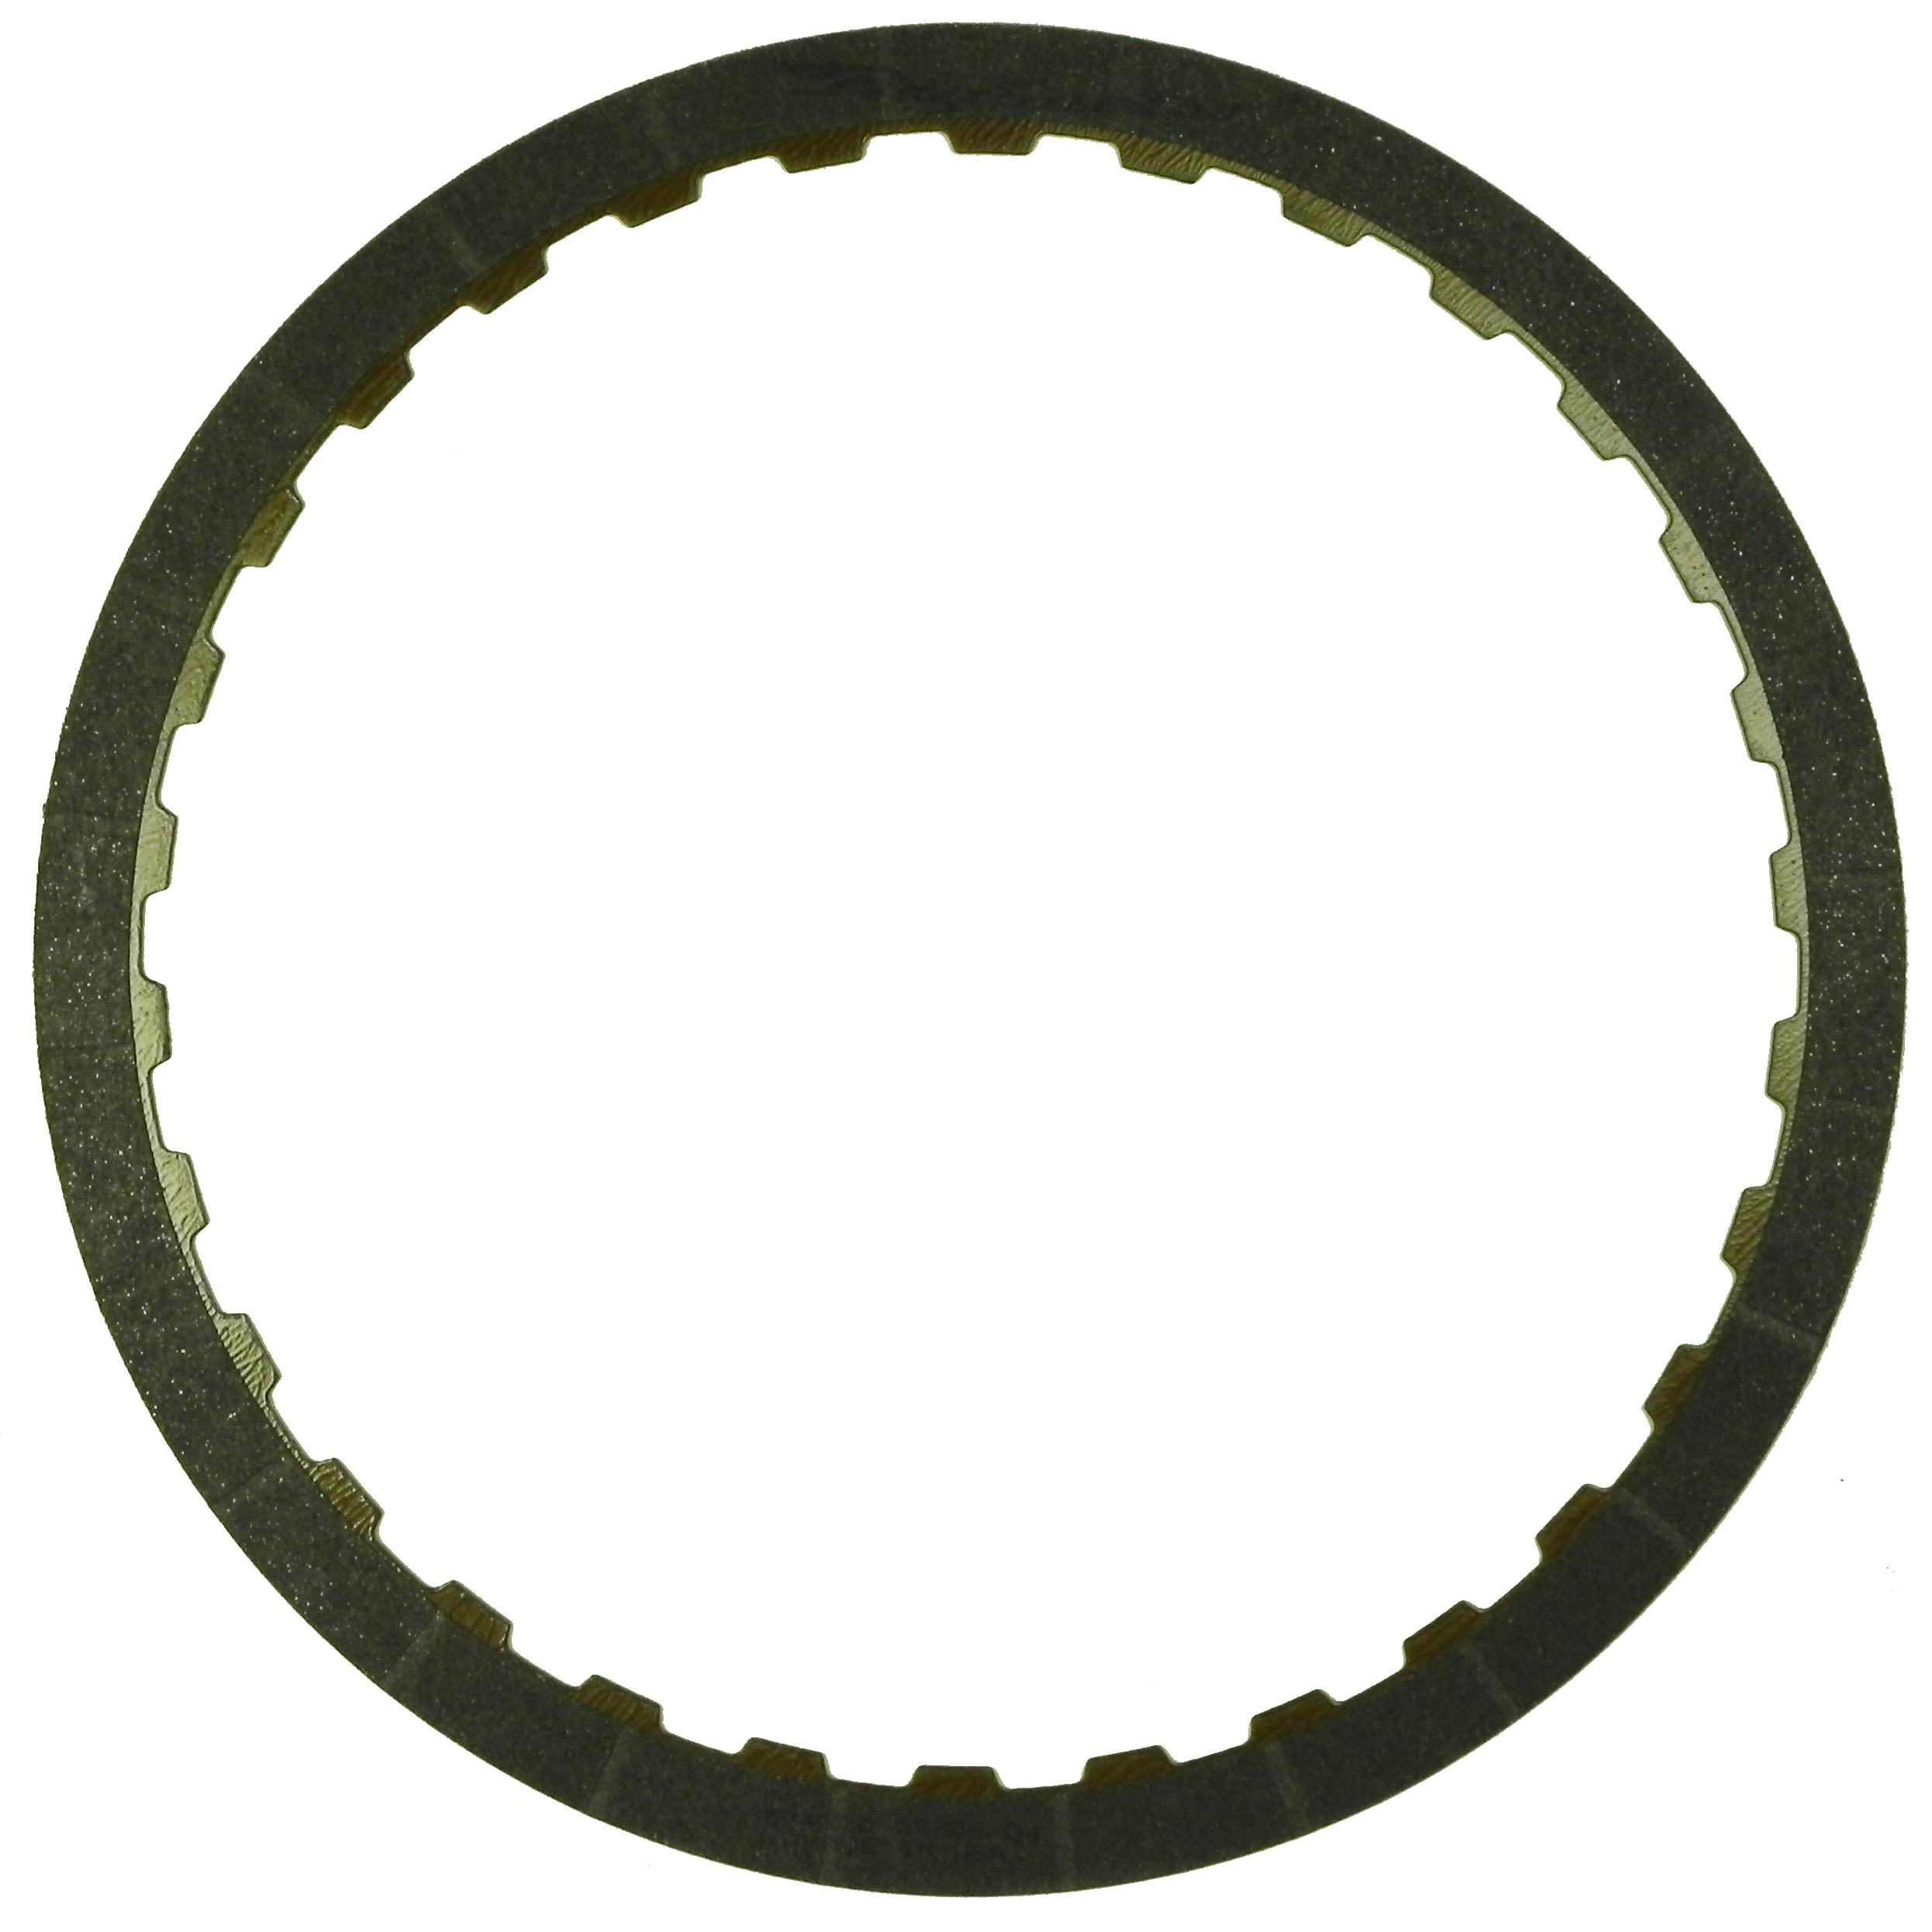 R574210 | 1992-2003 Friction Clutch Plate High Energy B (Direct/Reverse), C (Intermediate/Overrun), D (Low/Reverse) (Waved) High Energy